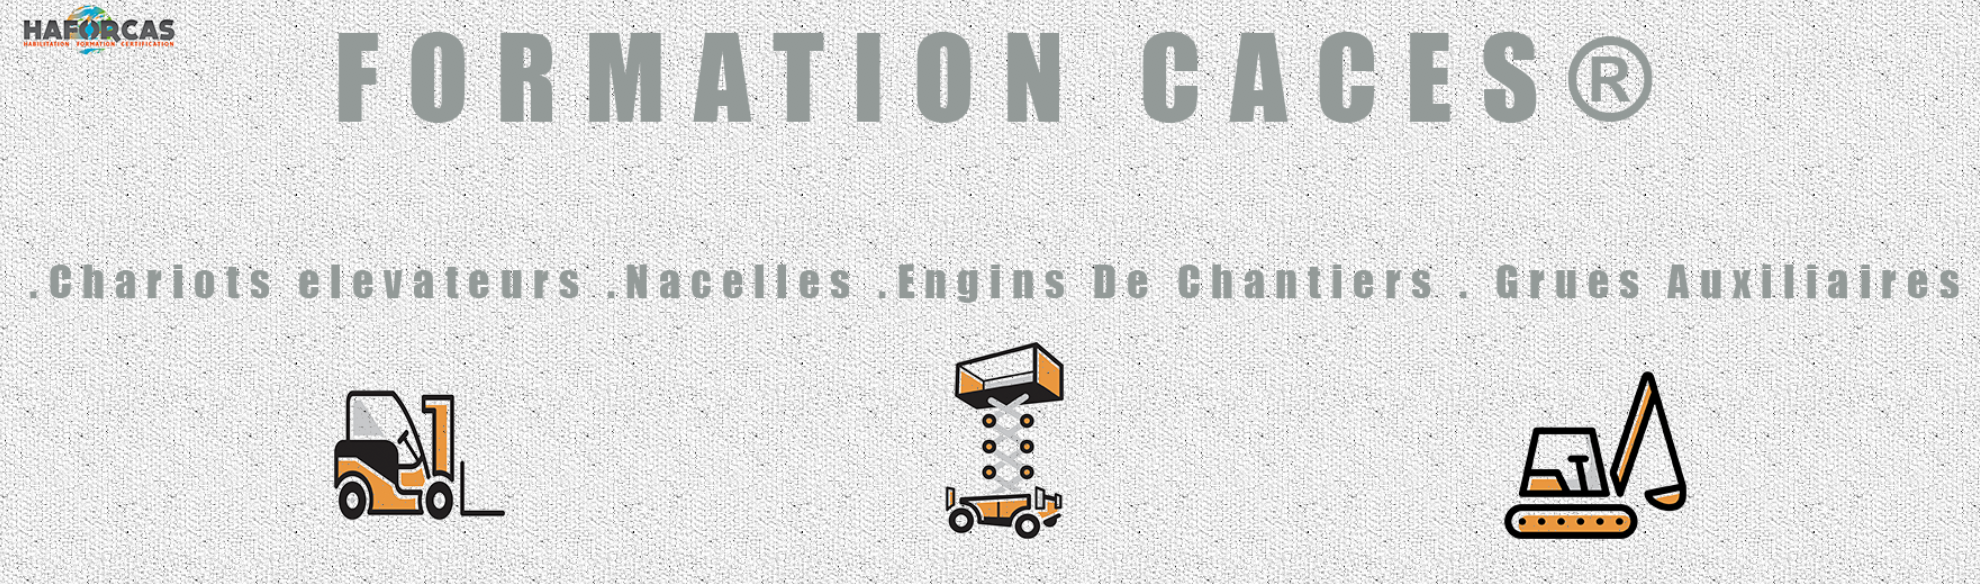 Formation CACES® HAFORCAS Formation